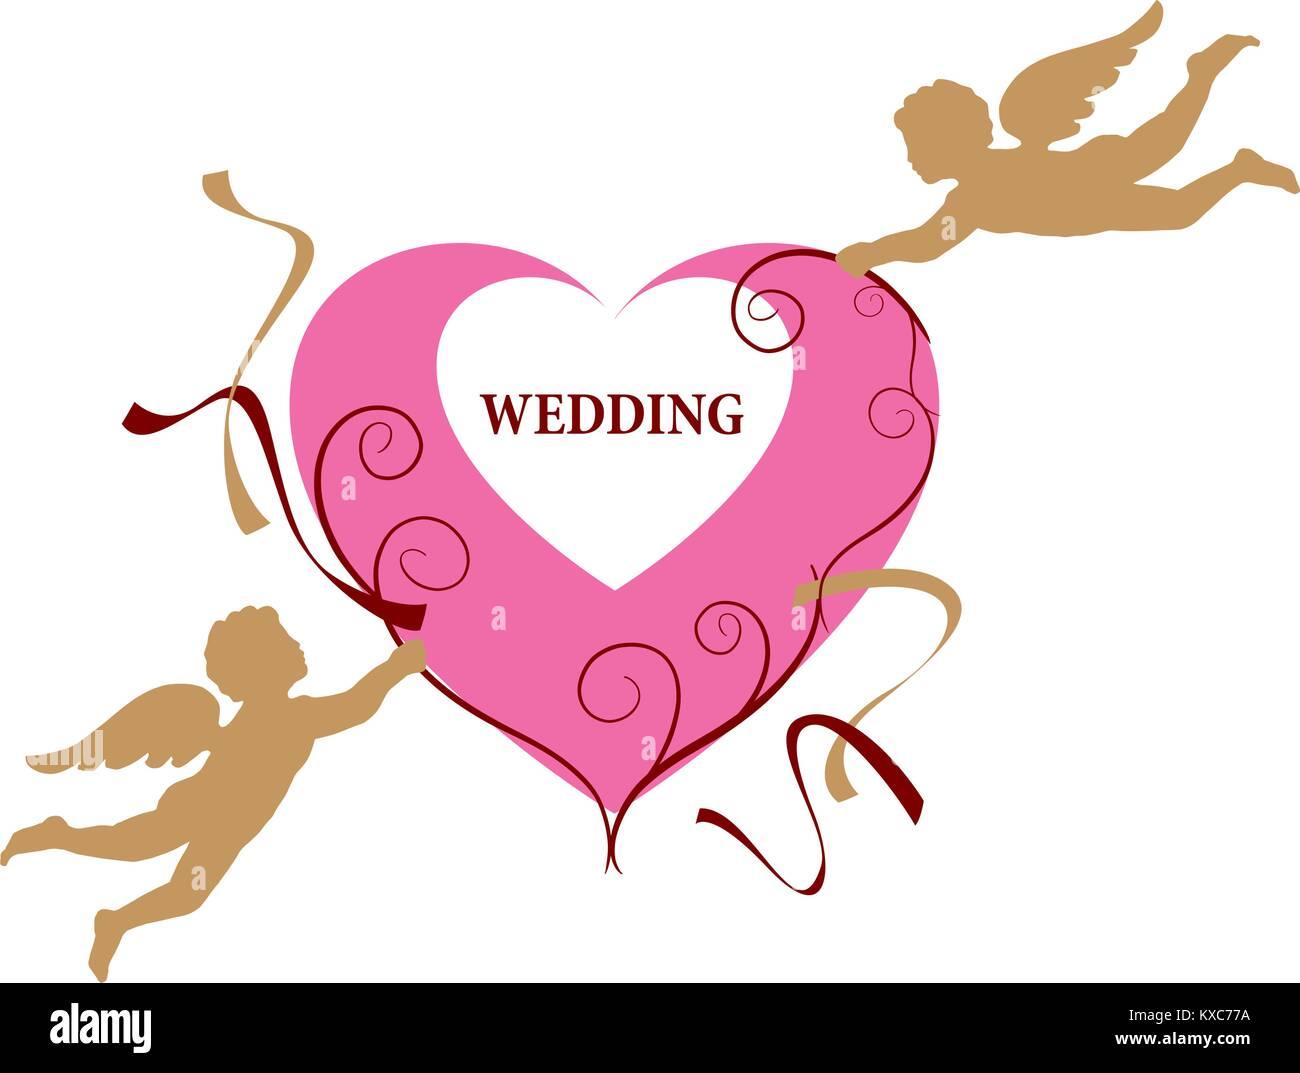 Wedding Rings Stock Vector Images - Alamy